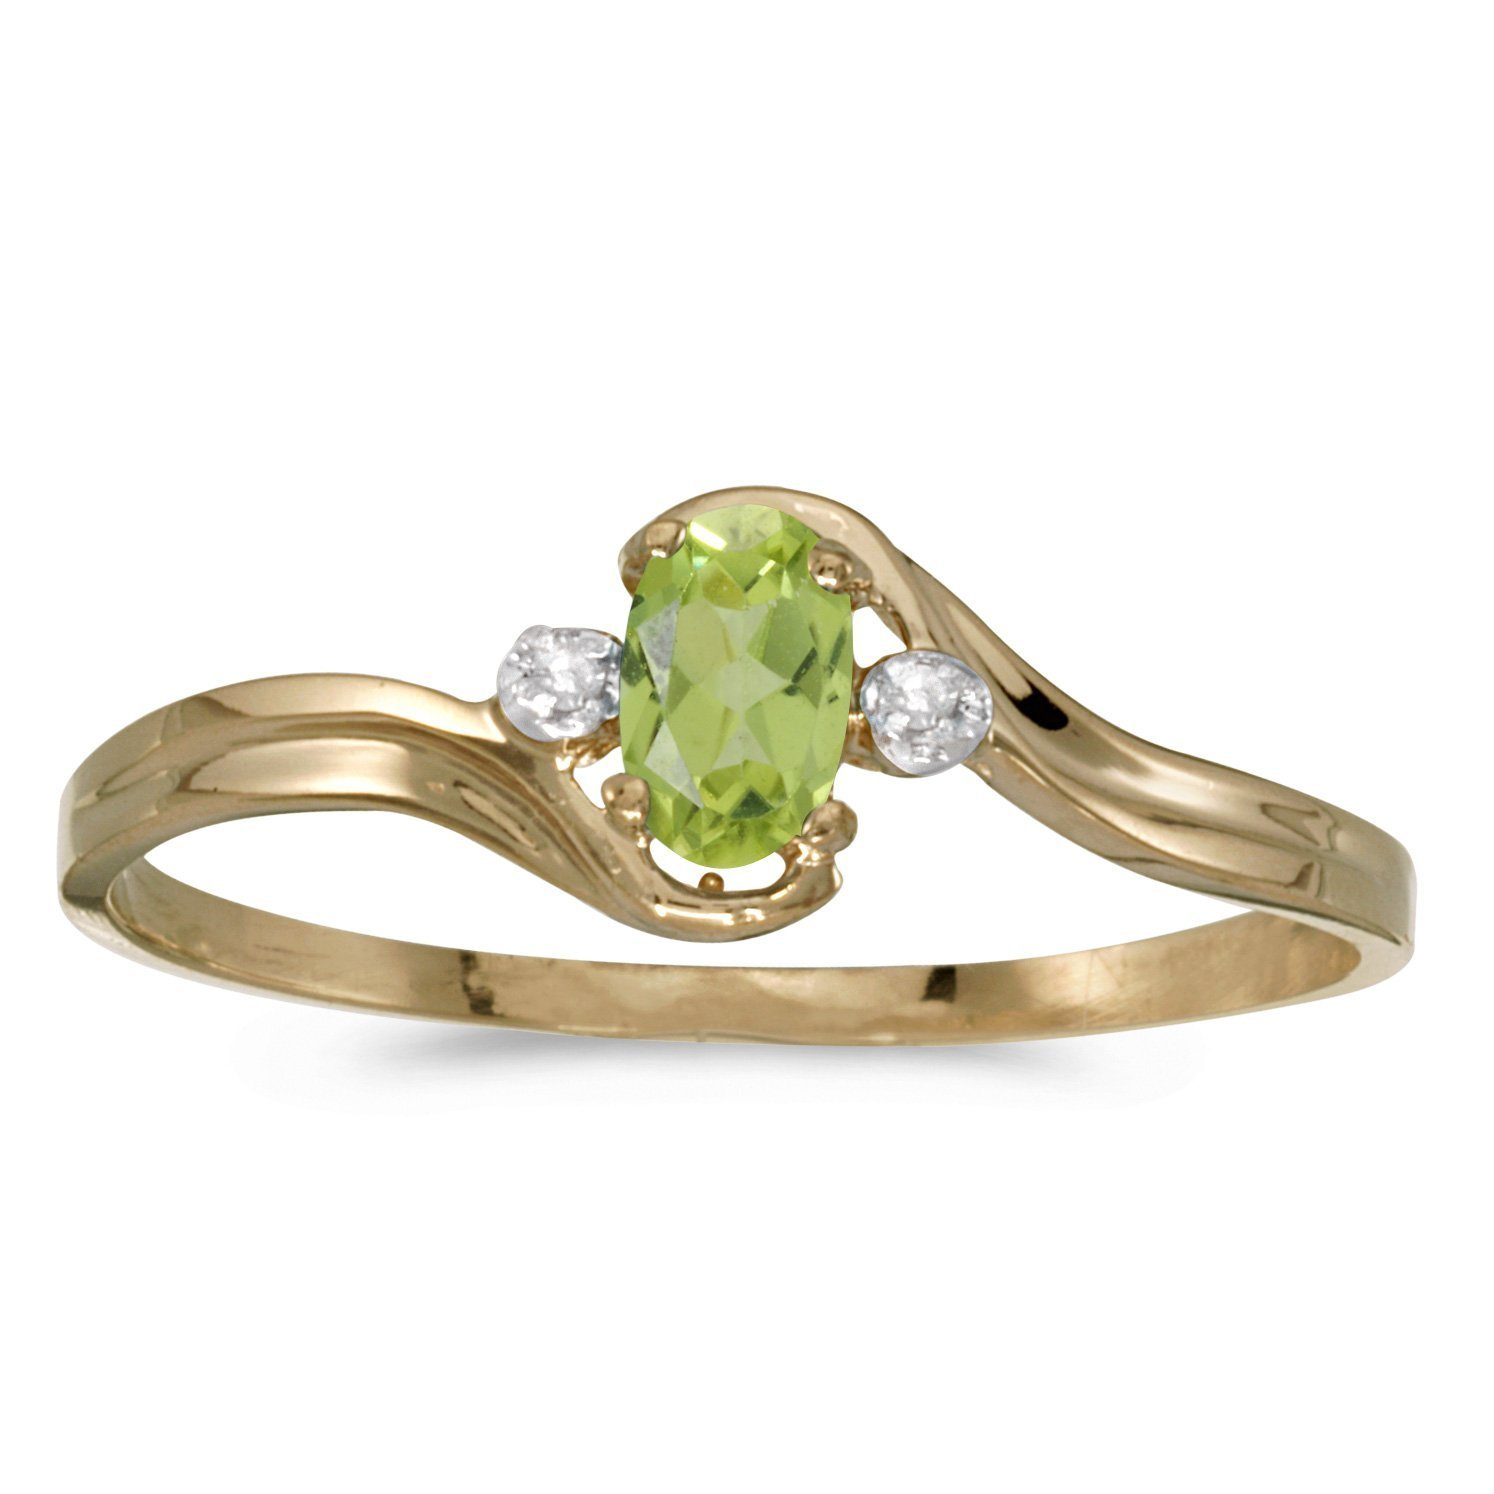 FB Jewels 14k Yellow Gold Genuine Green Birthstone Solitaire Oval Peridot And Diamond Wedding Engagement Statement Ring - Size 8 (1/5 Cttw.)